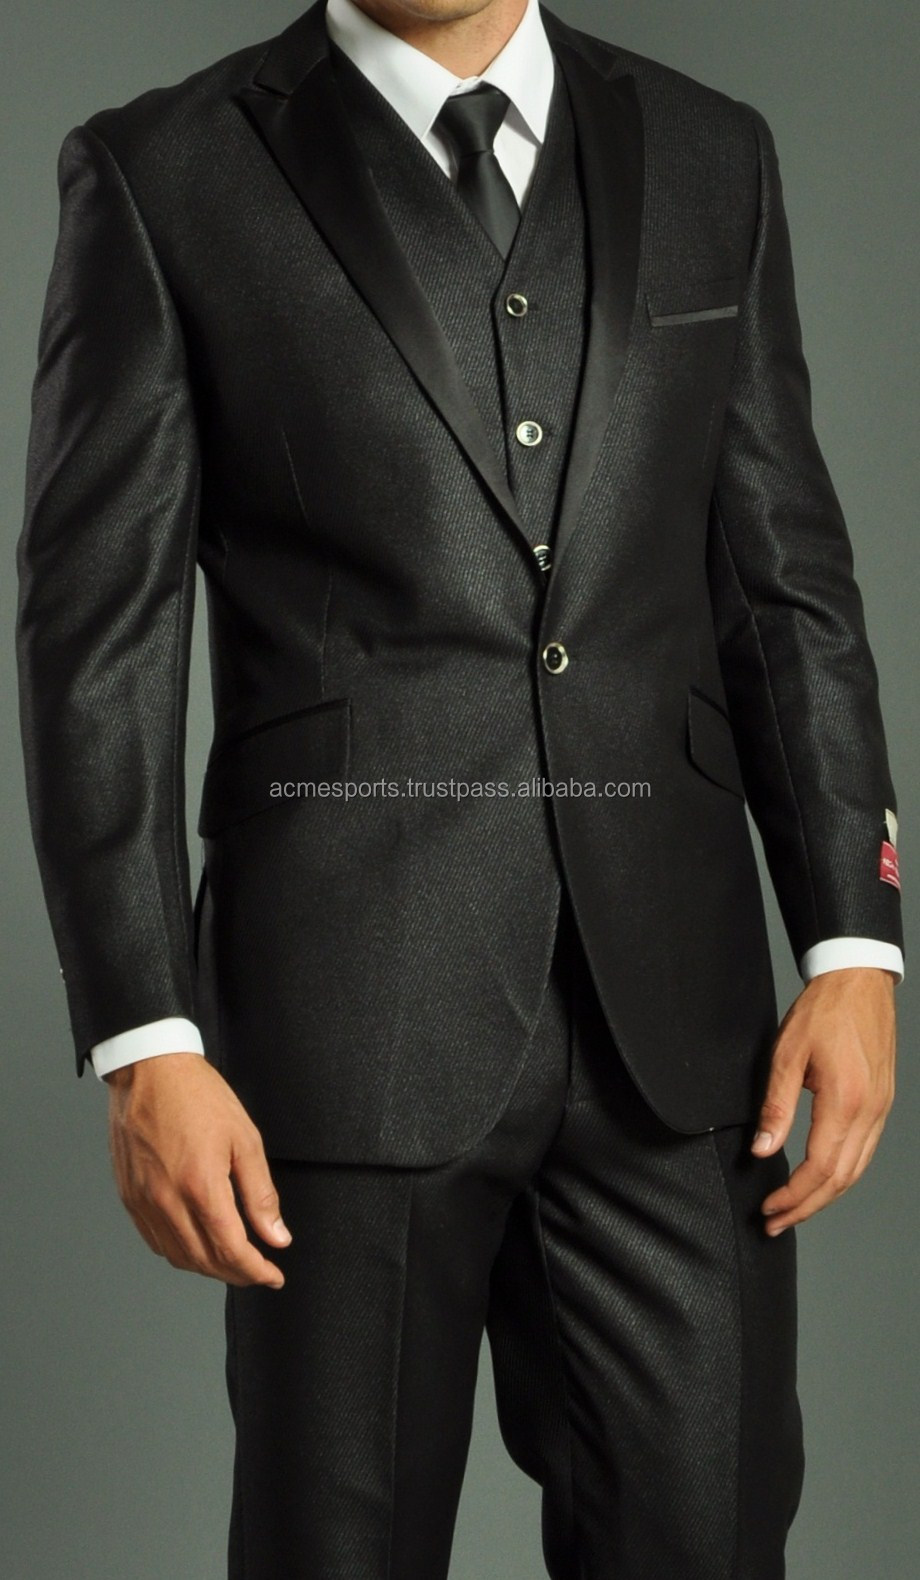 Mens Business Suits - Custom Made Tuxedo Mens Suits - Mens Wedding ...